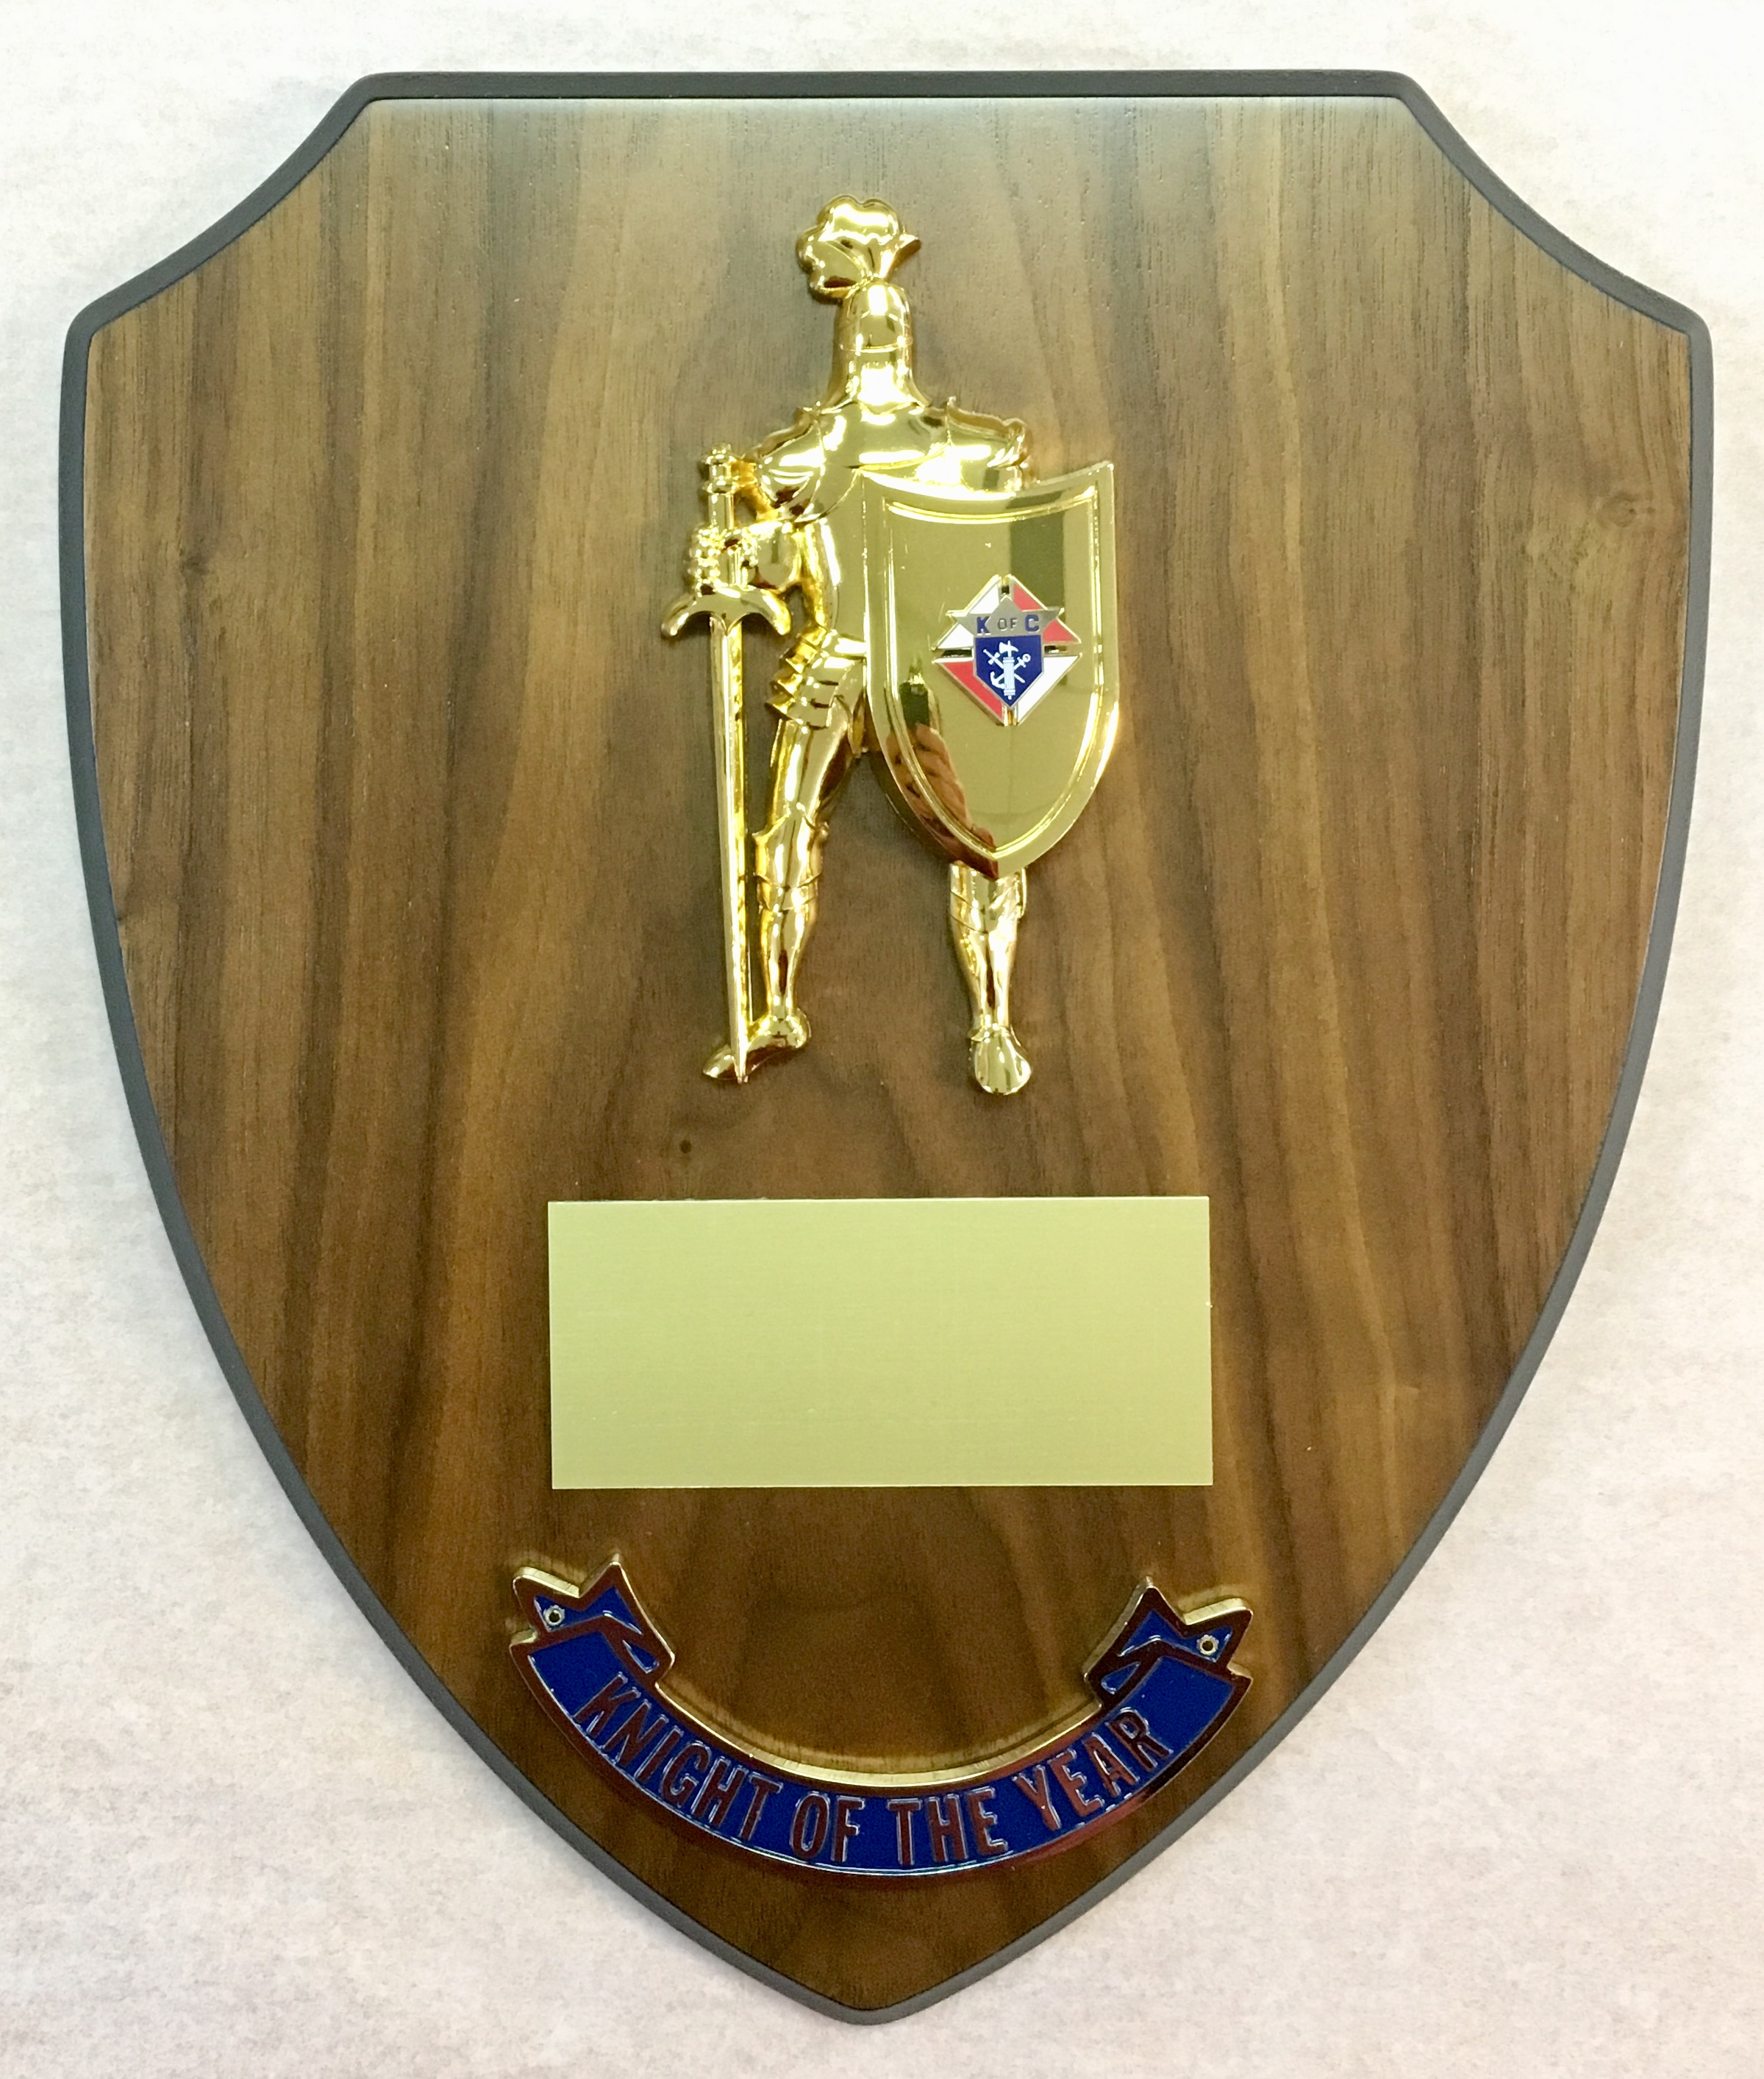 Knight of the Year Plaque